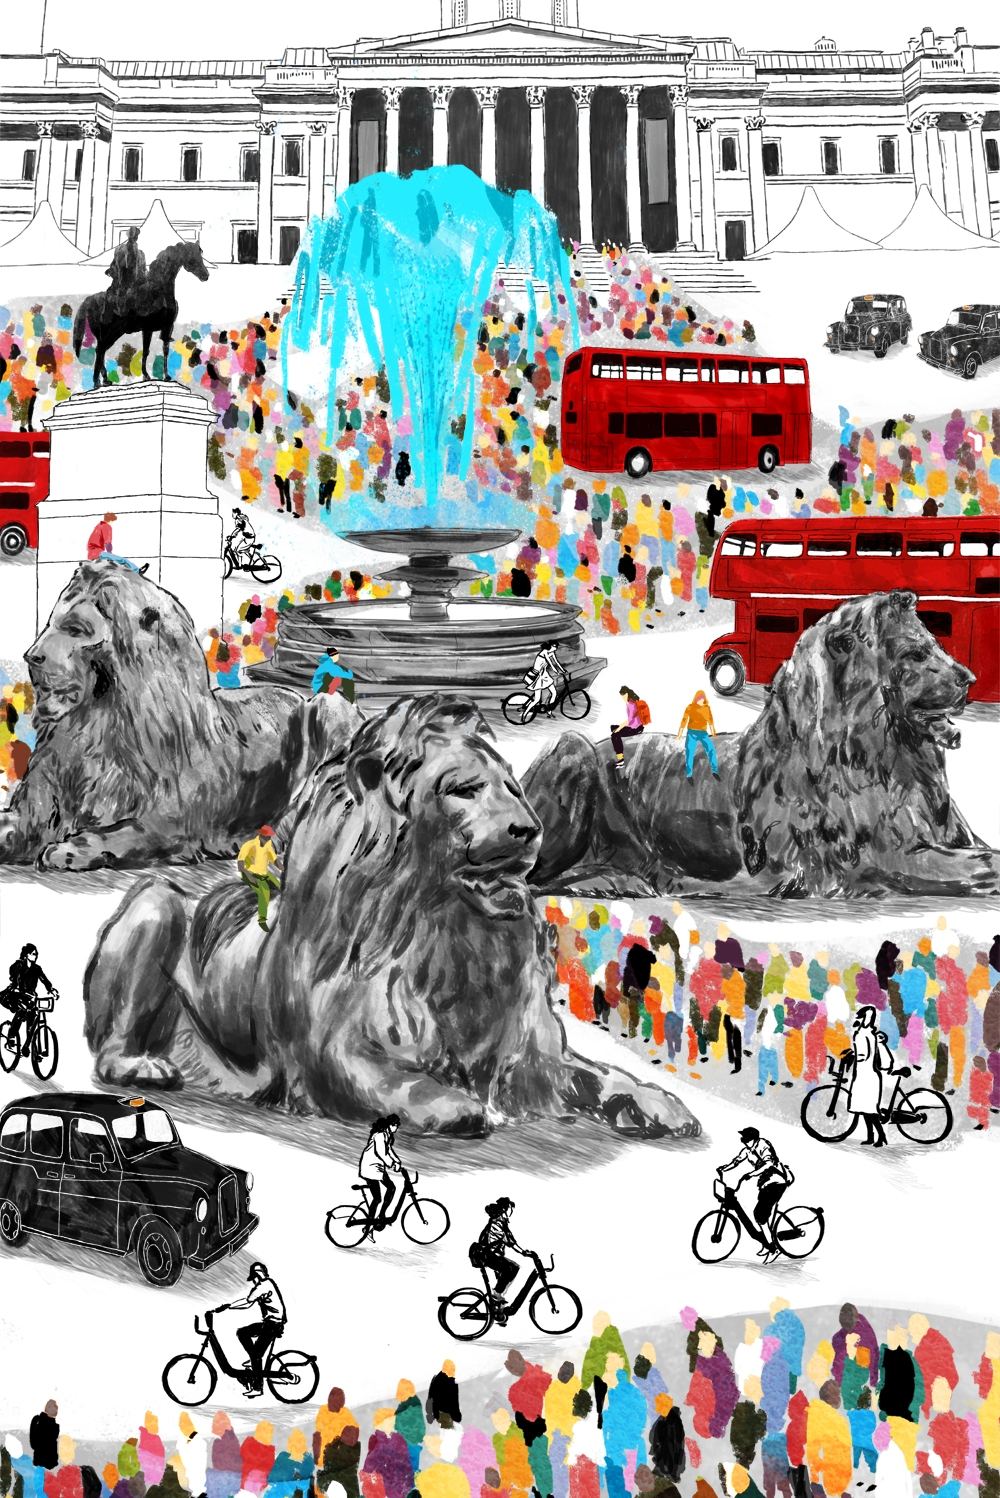 'Trafalgar Square'   Longlisted for AOI Illustration Competition 2015